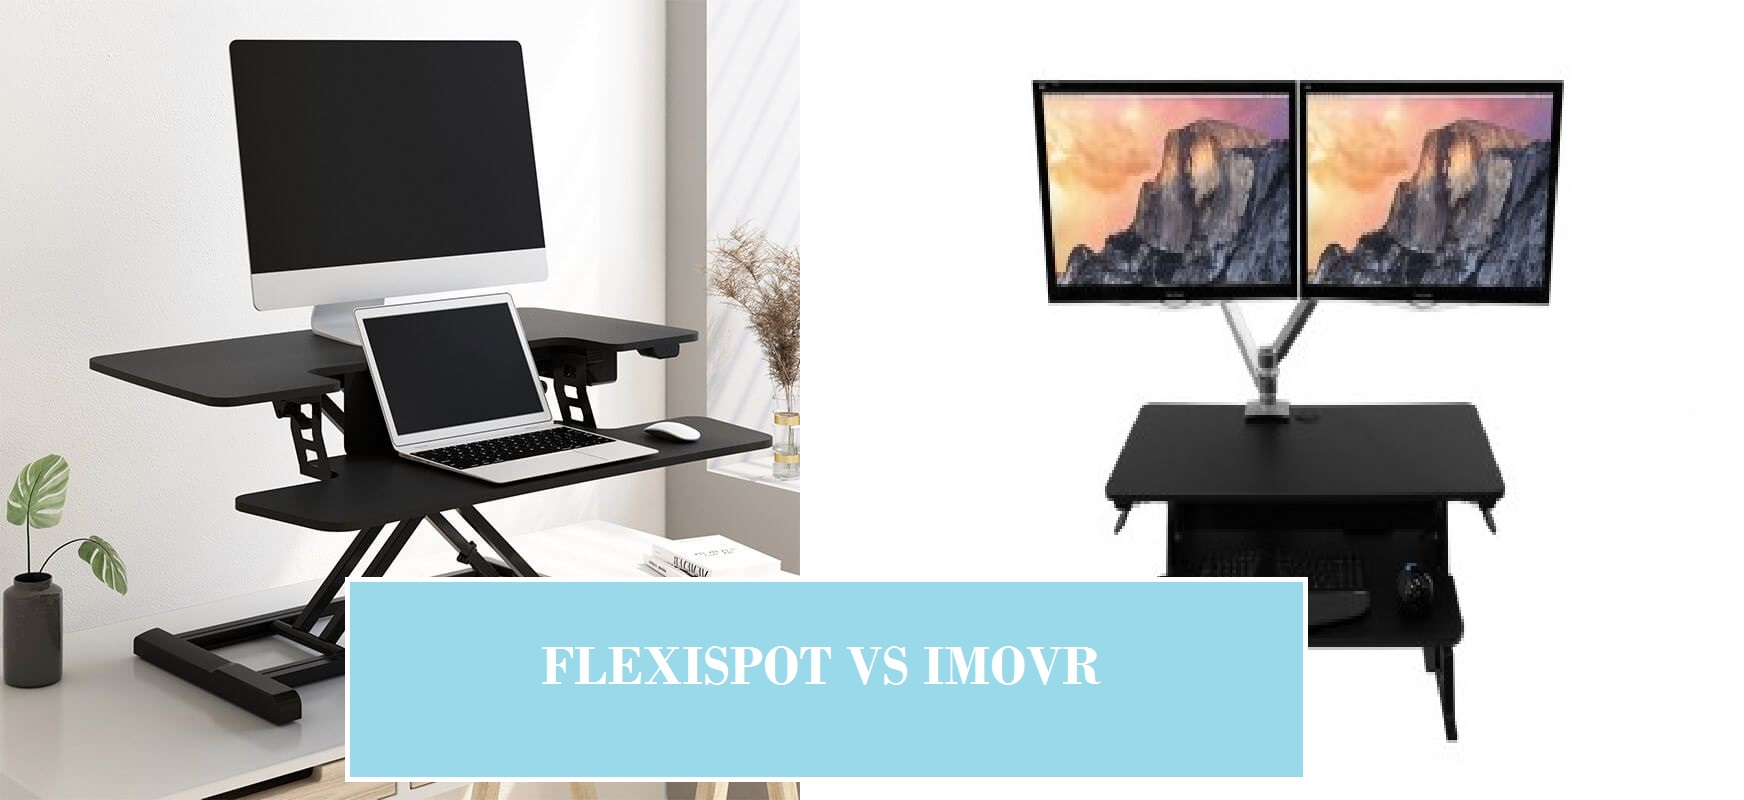 flexispot vs imovr